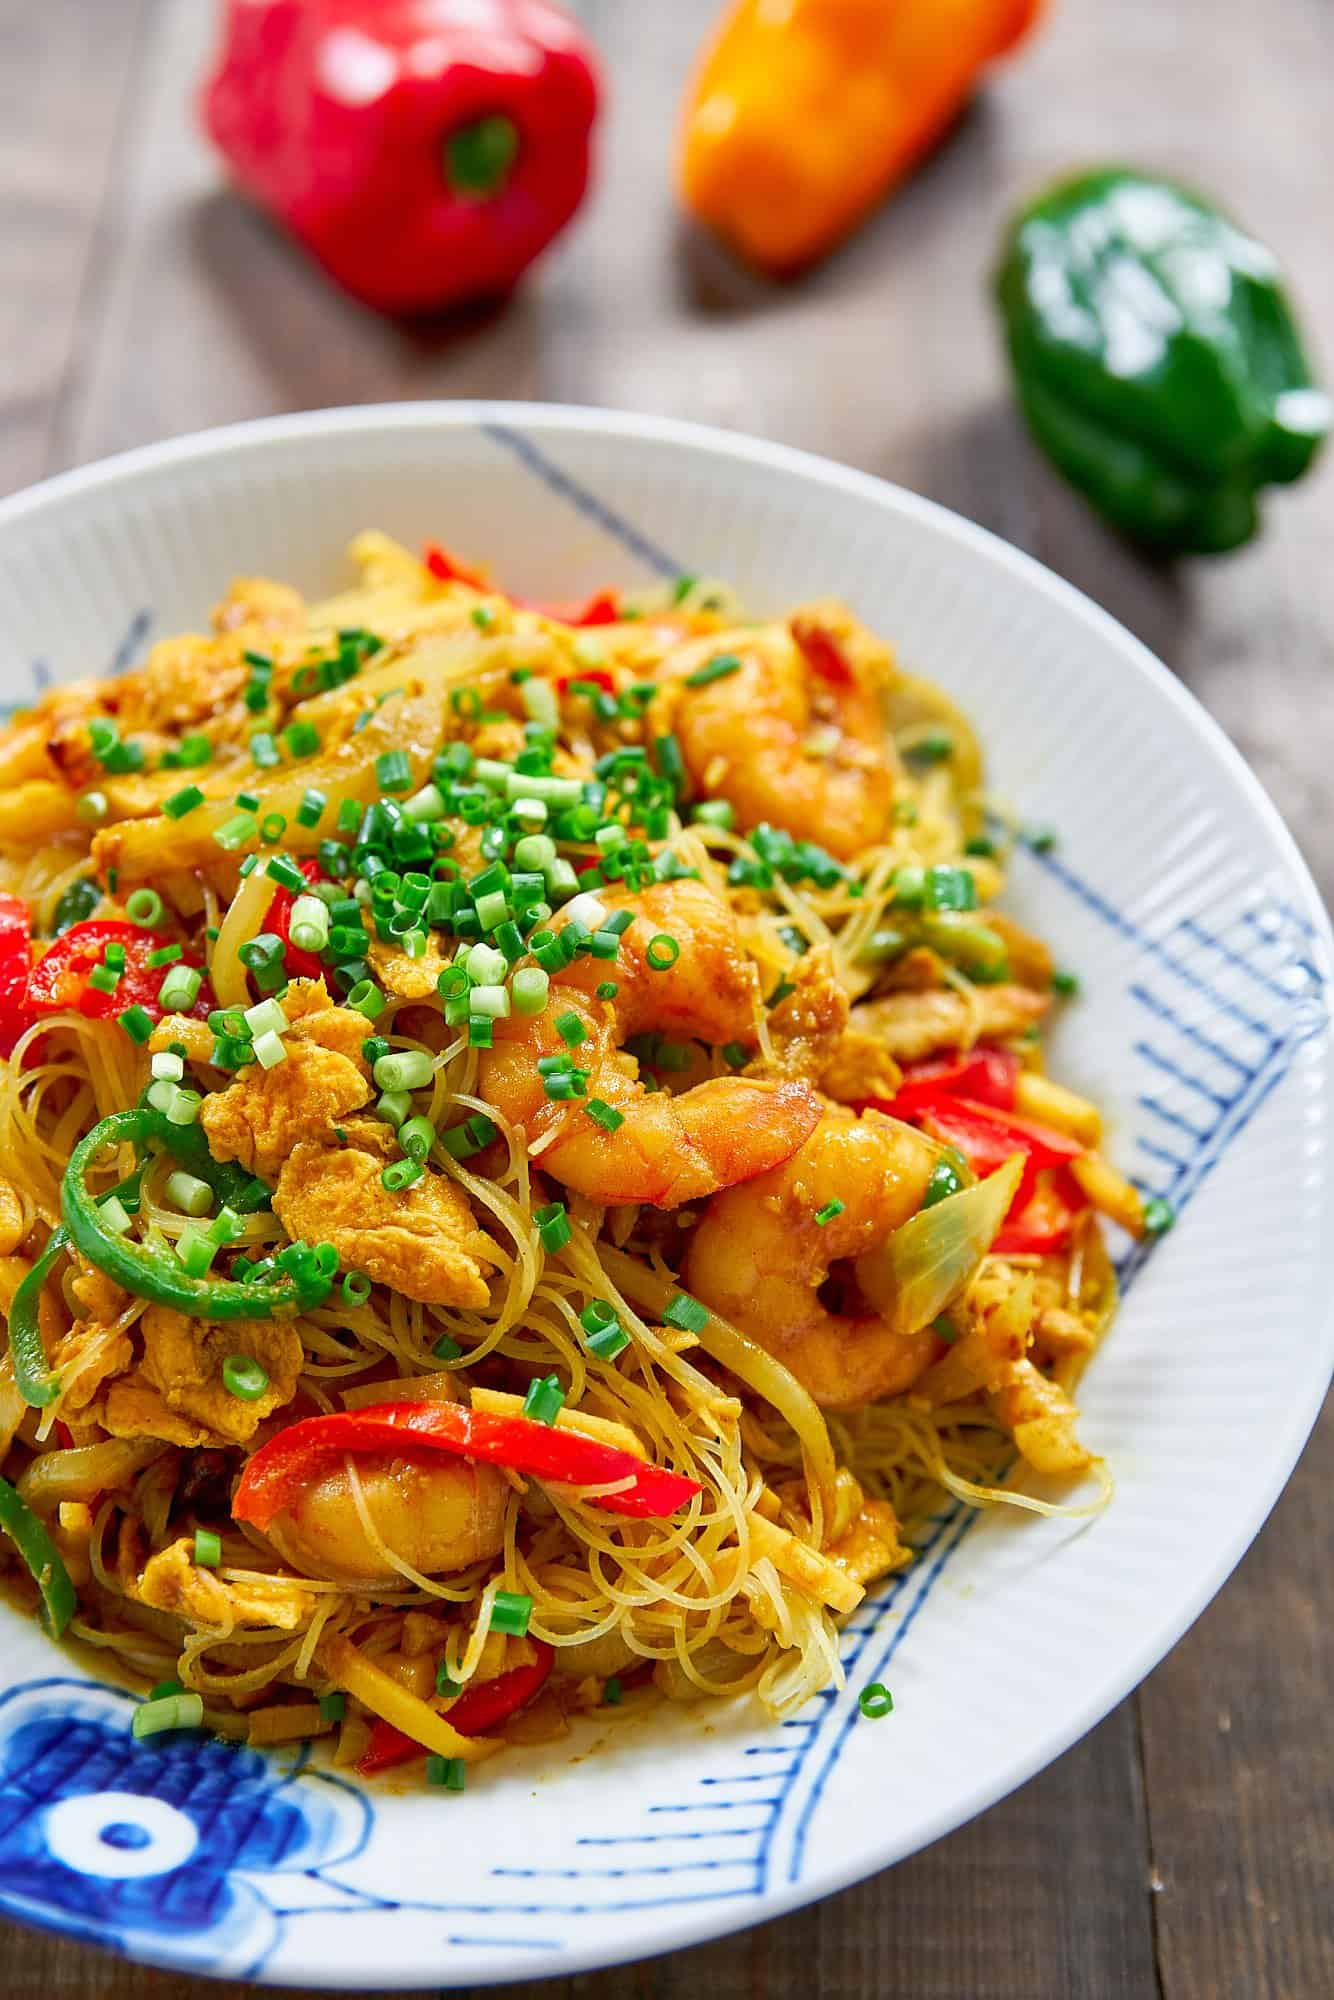 These delicious Singapore Noodles are loaded with shrimp, veggies, and curry flavored rice noodles. Way better than Chinese take-out from a red pagoda box!